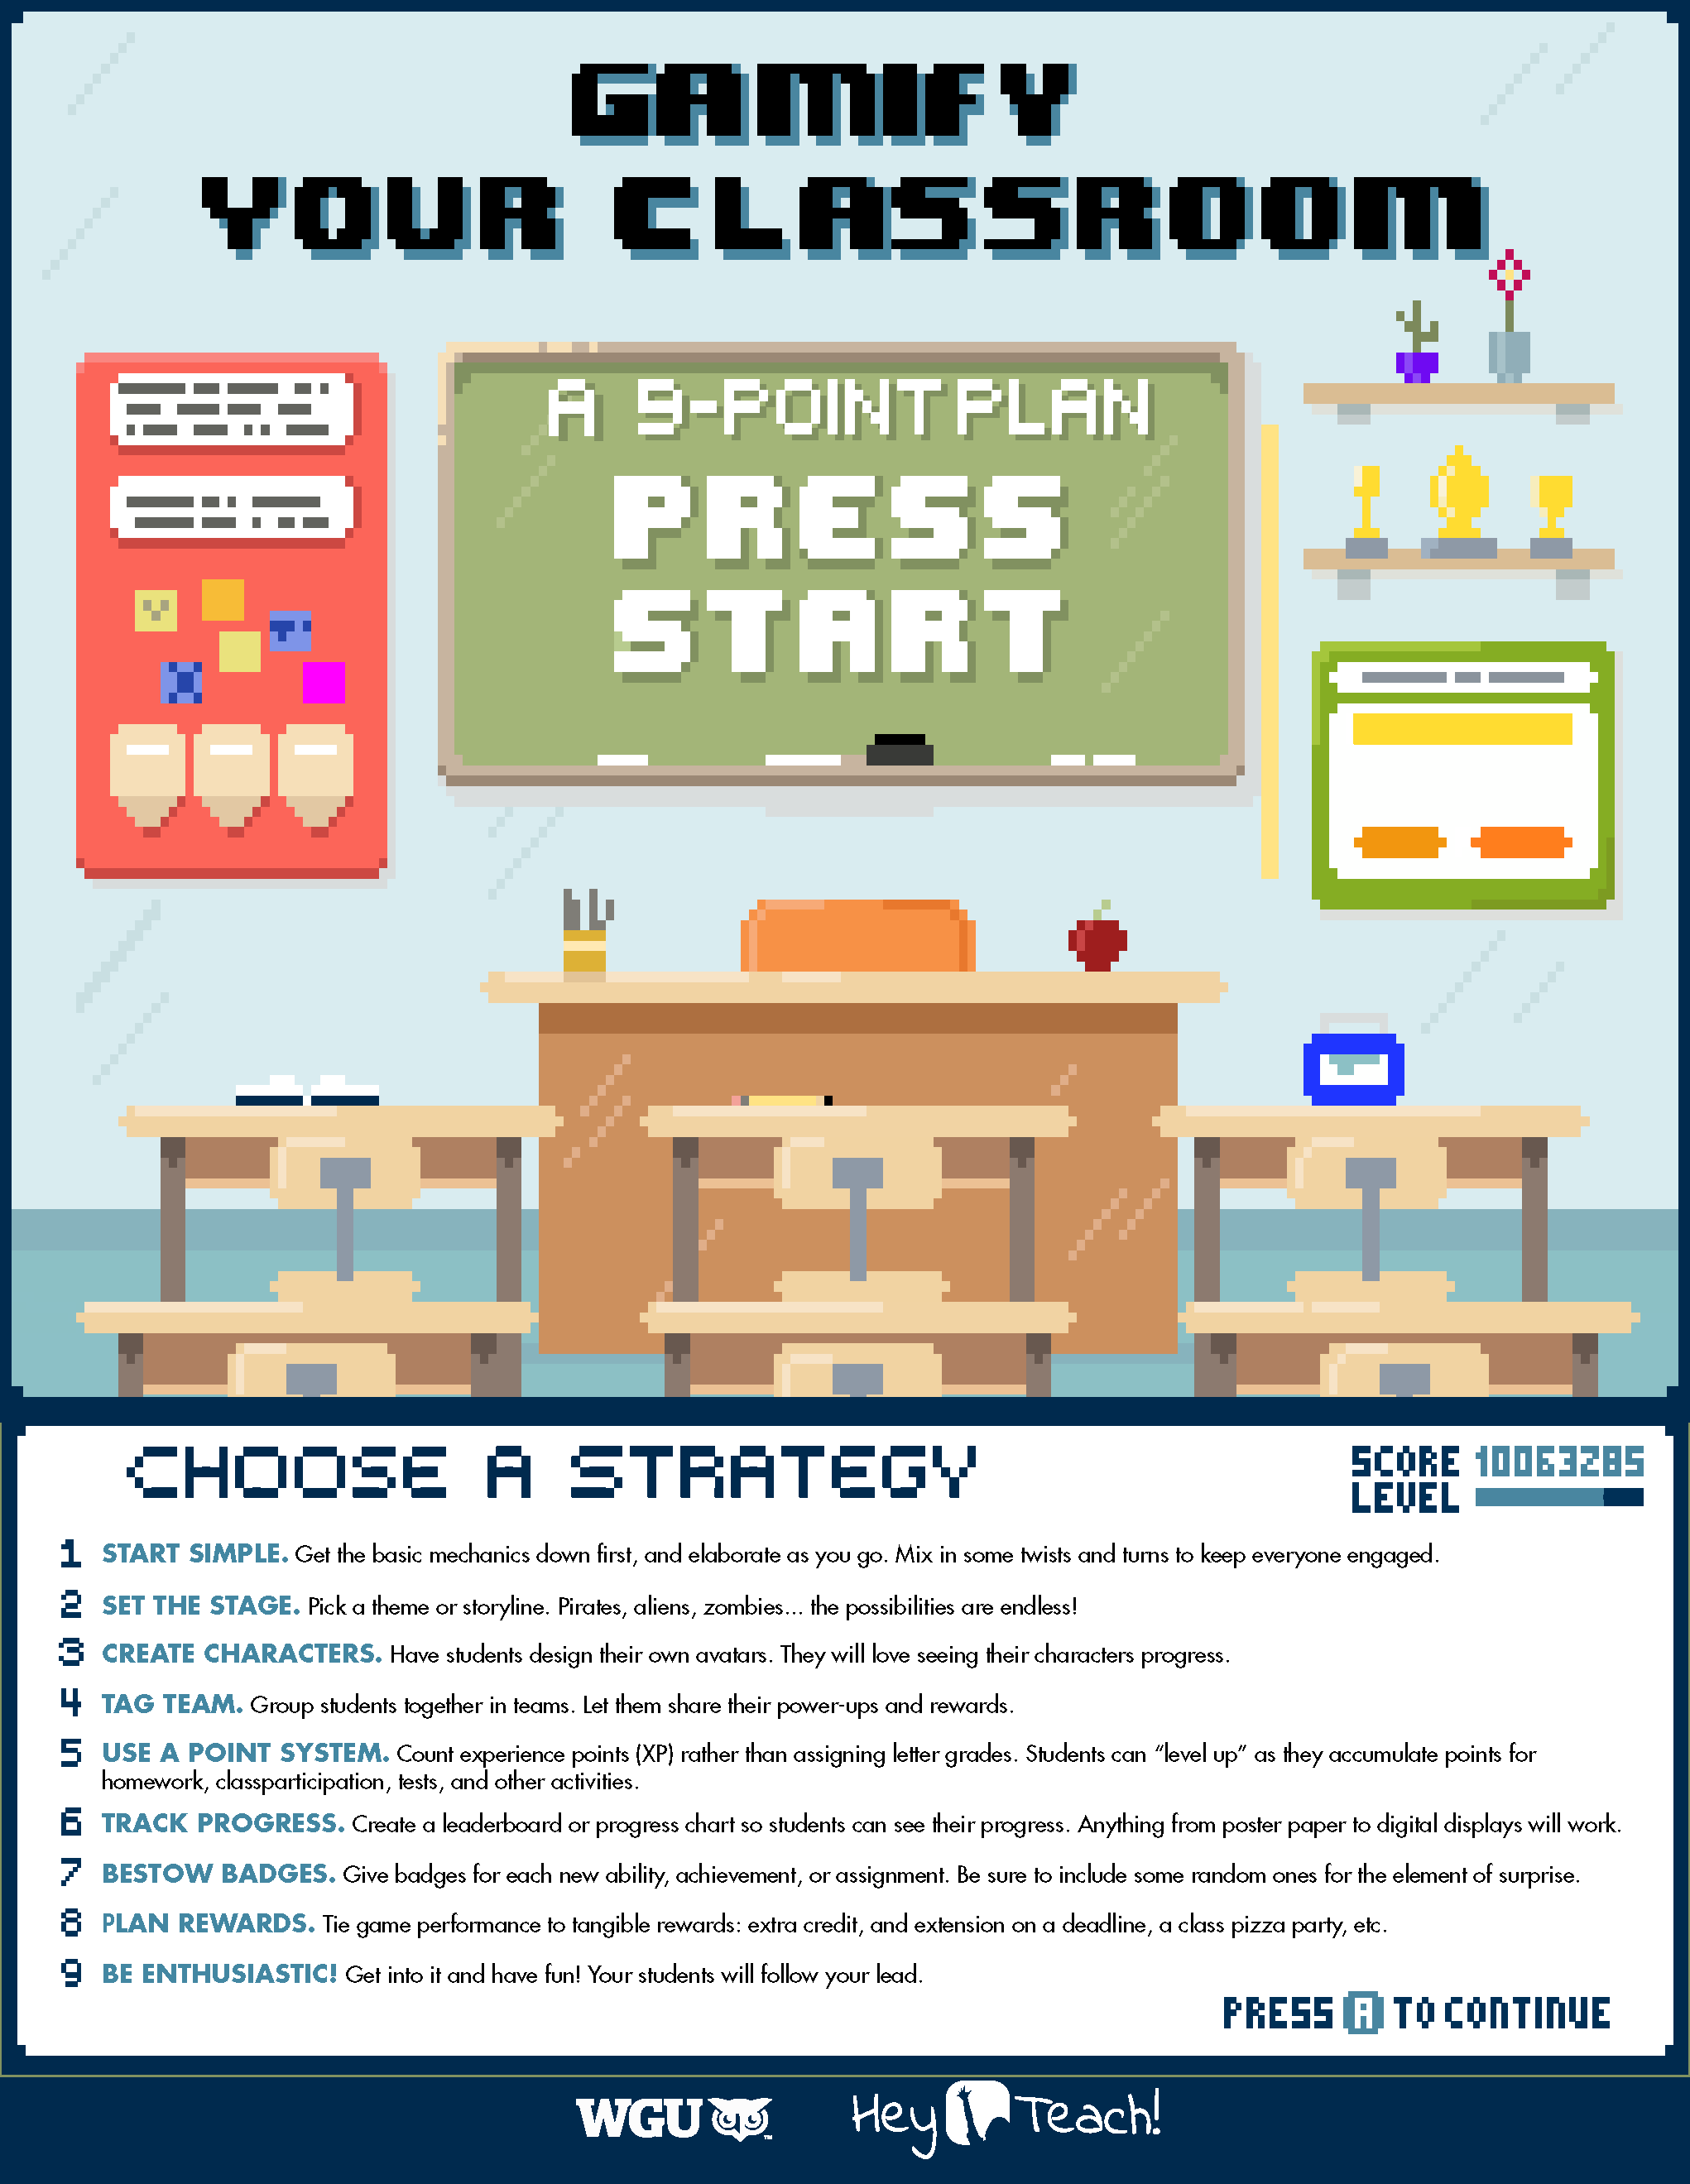 Infographic on classroom gamification techniques